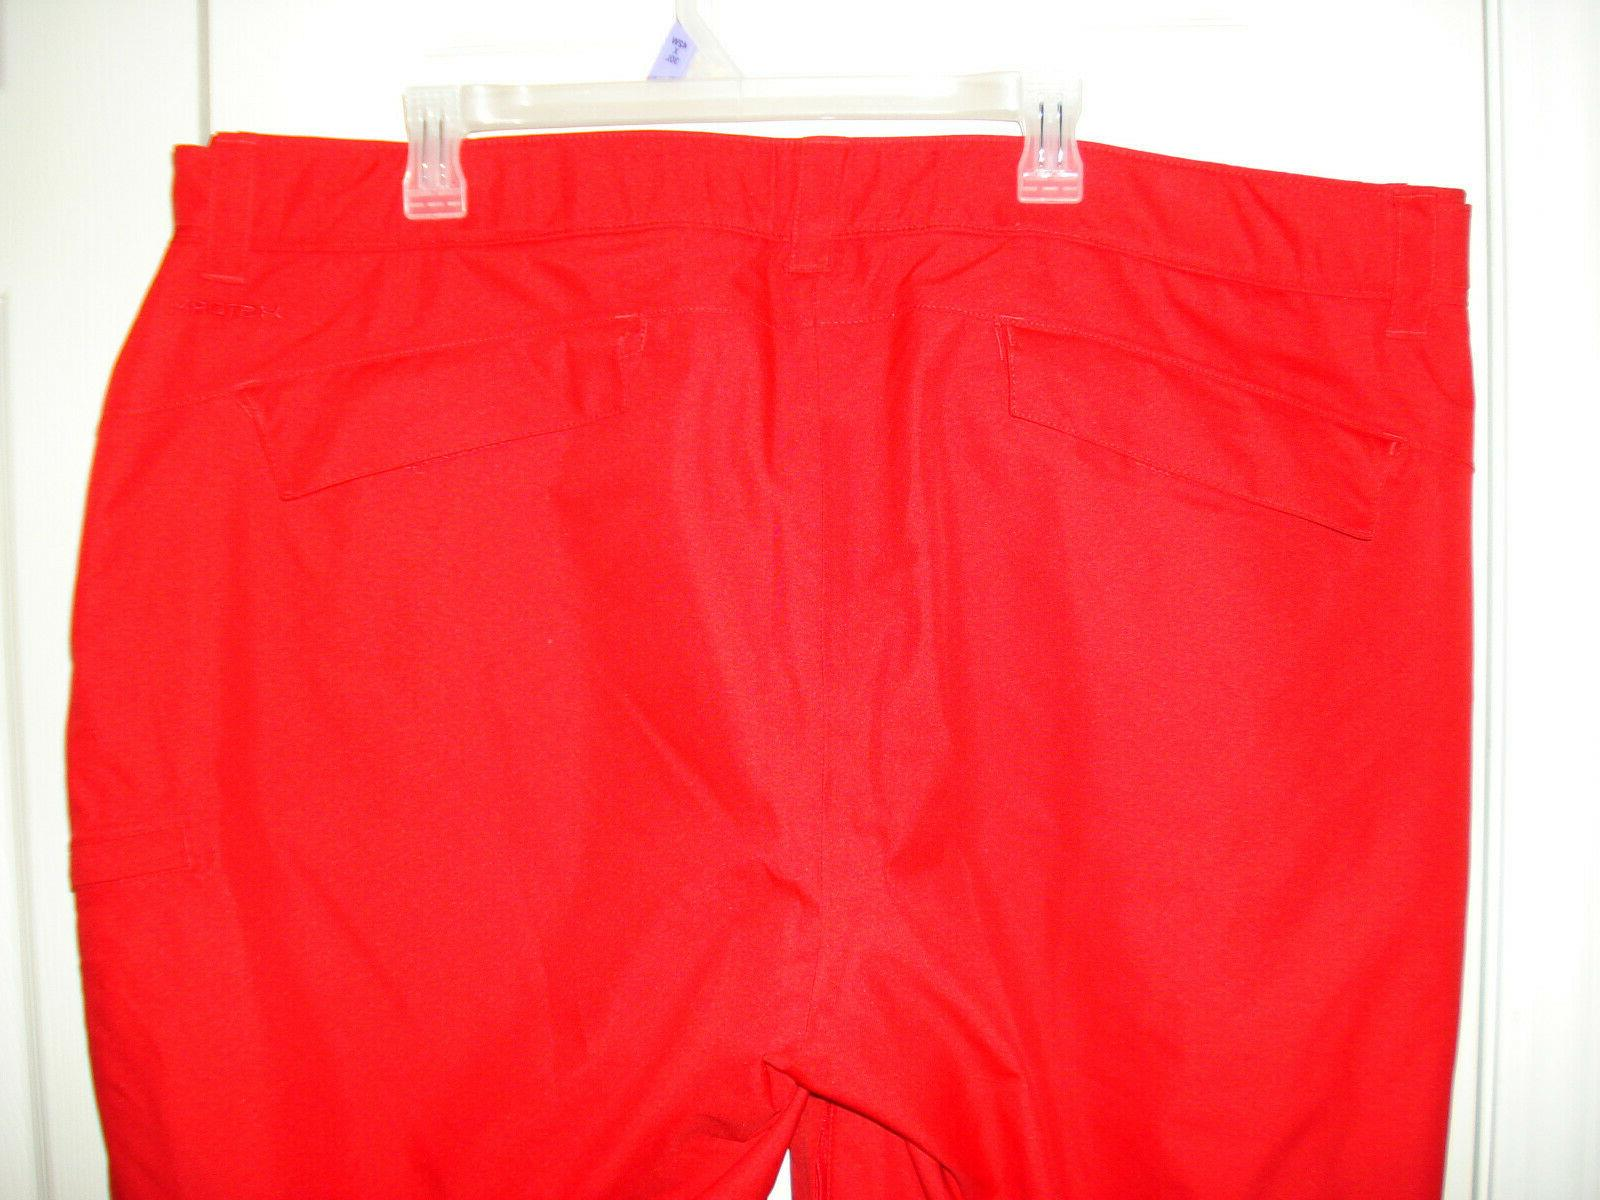 UNDER ARMOUR STORM INFRARED BOARD SKI PANTS SIZE 3XL